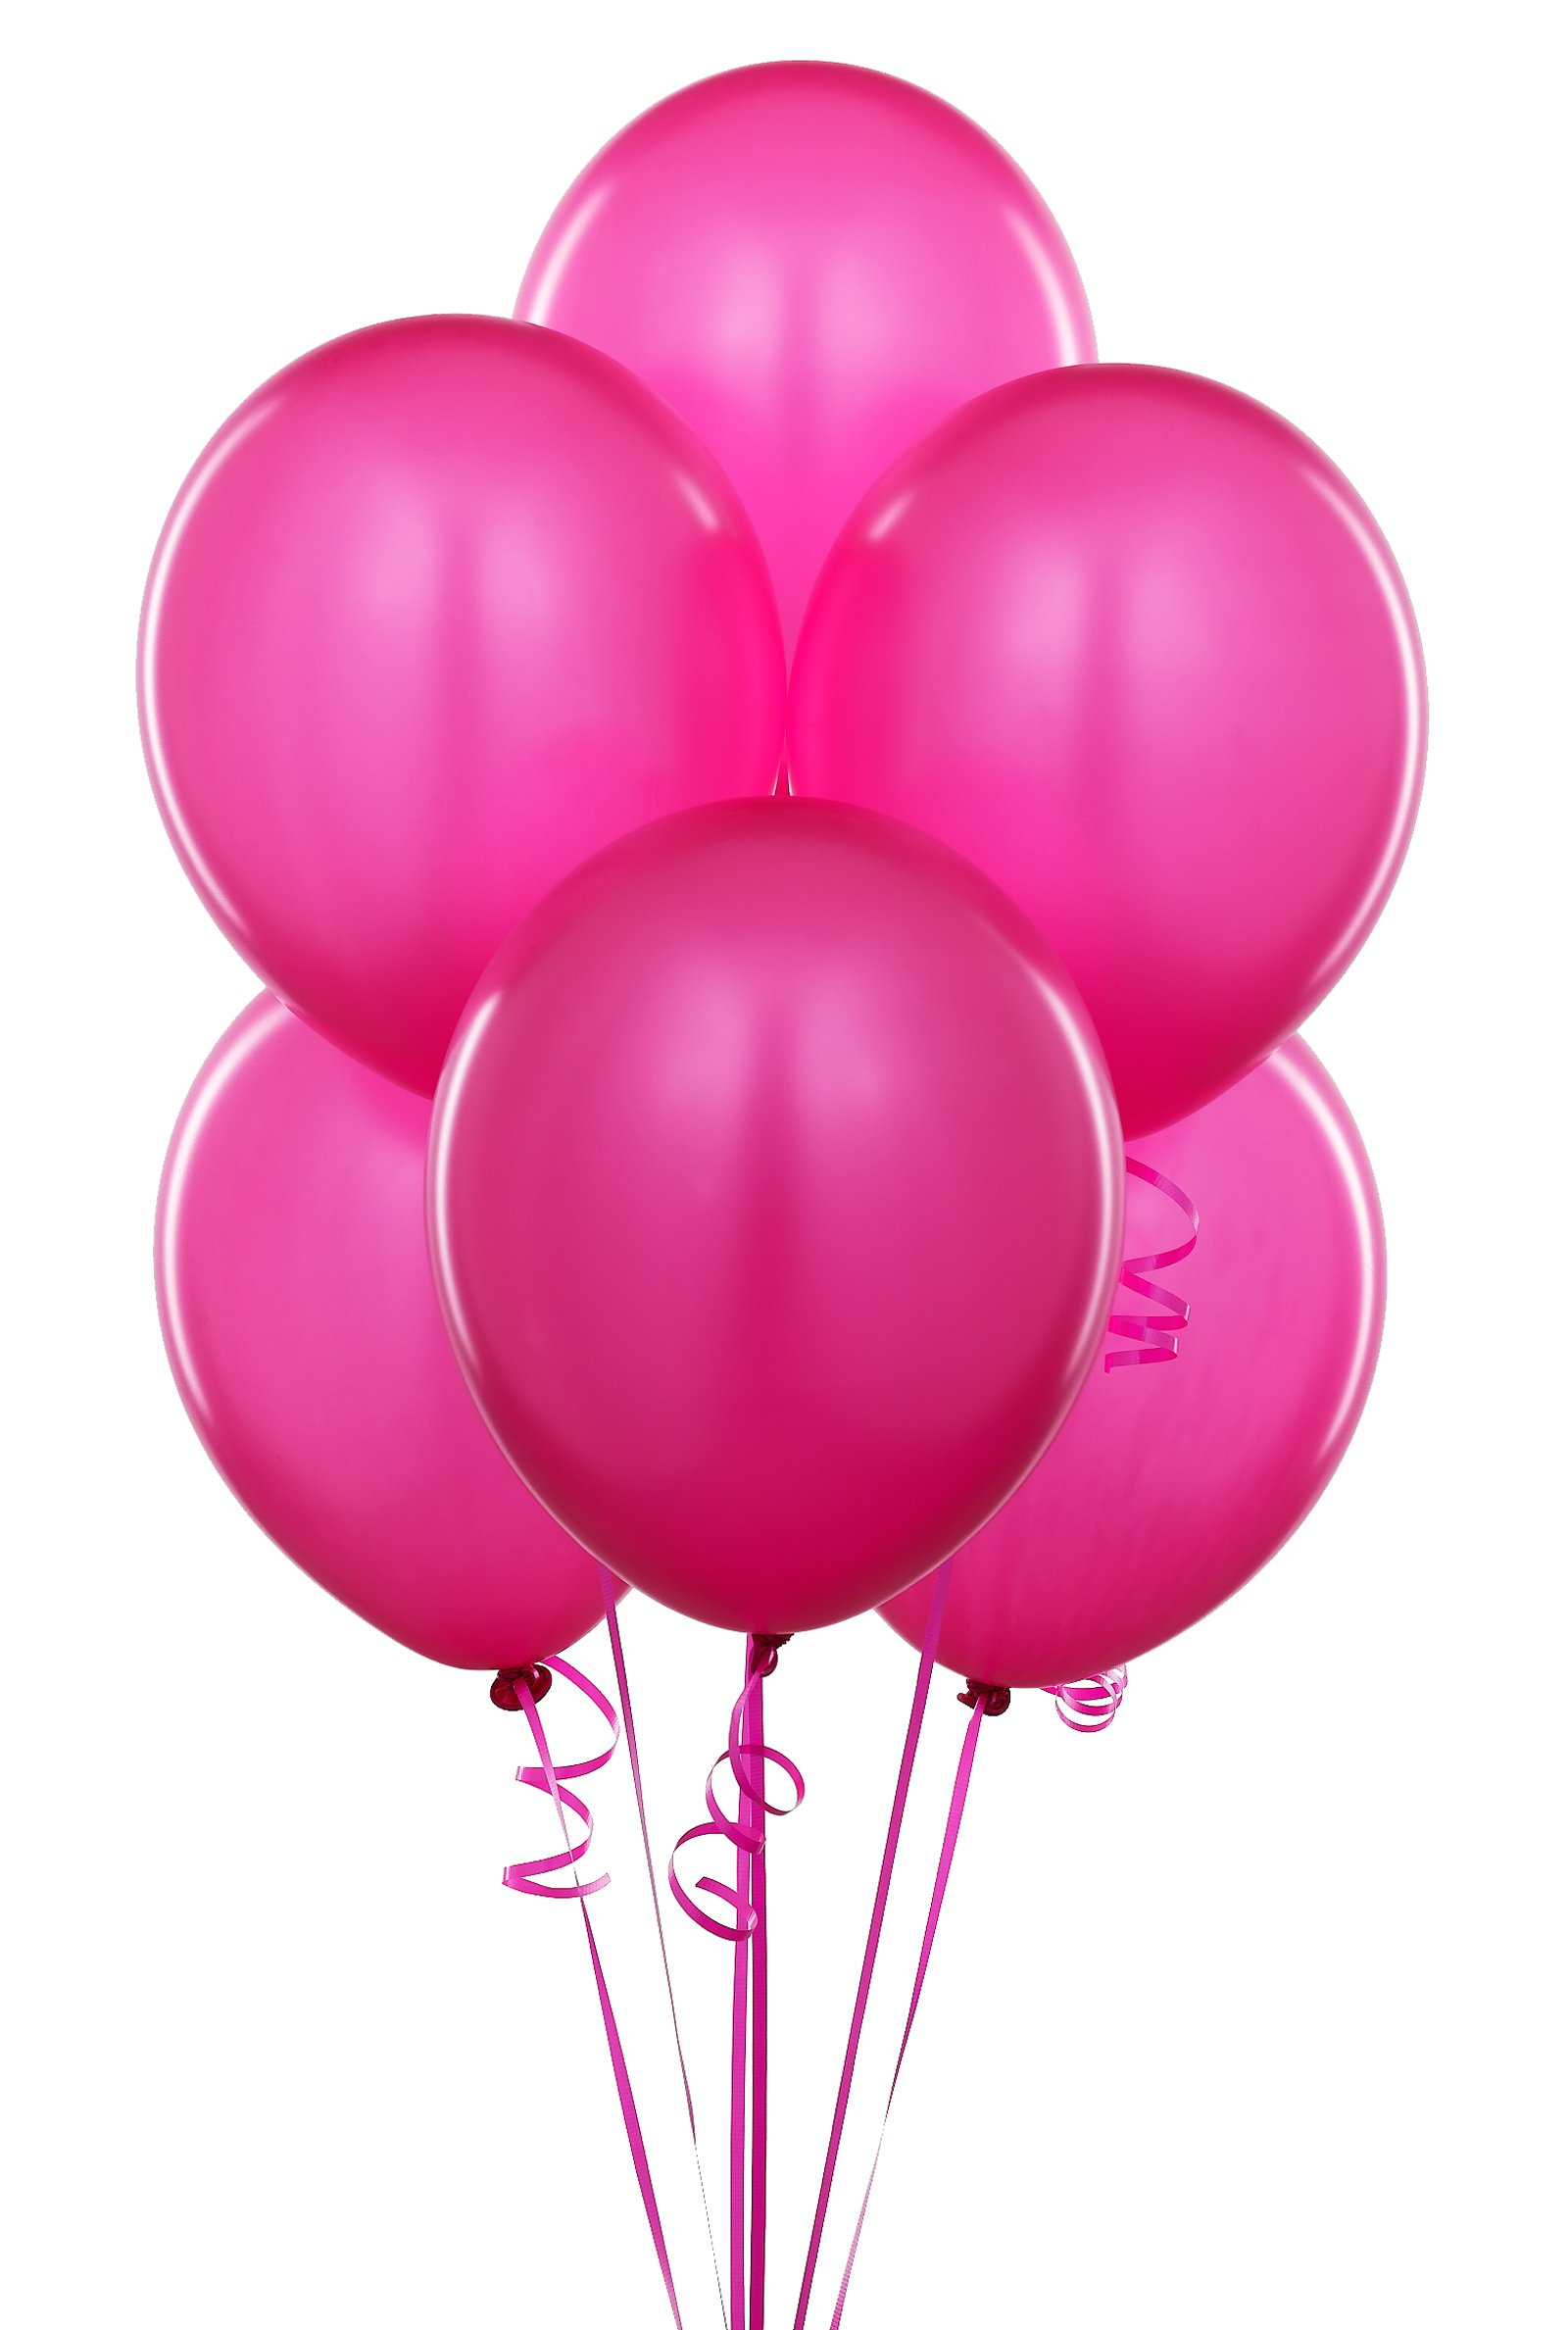 Free Fuschia Balloon Cliparts, Download Free Clip Art, Free.